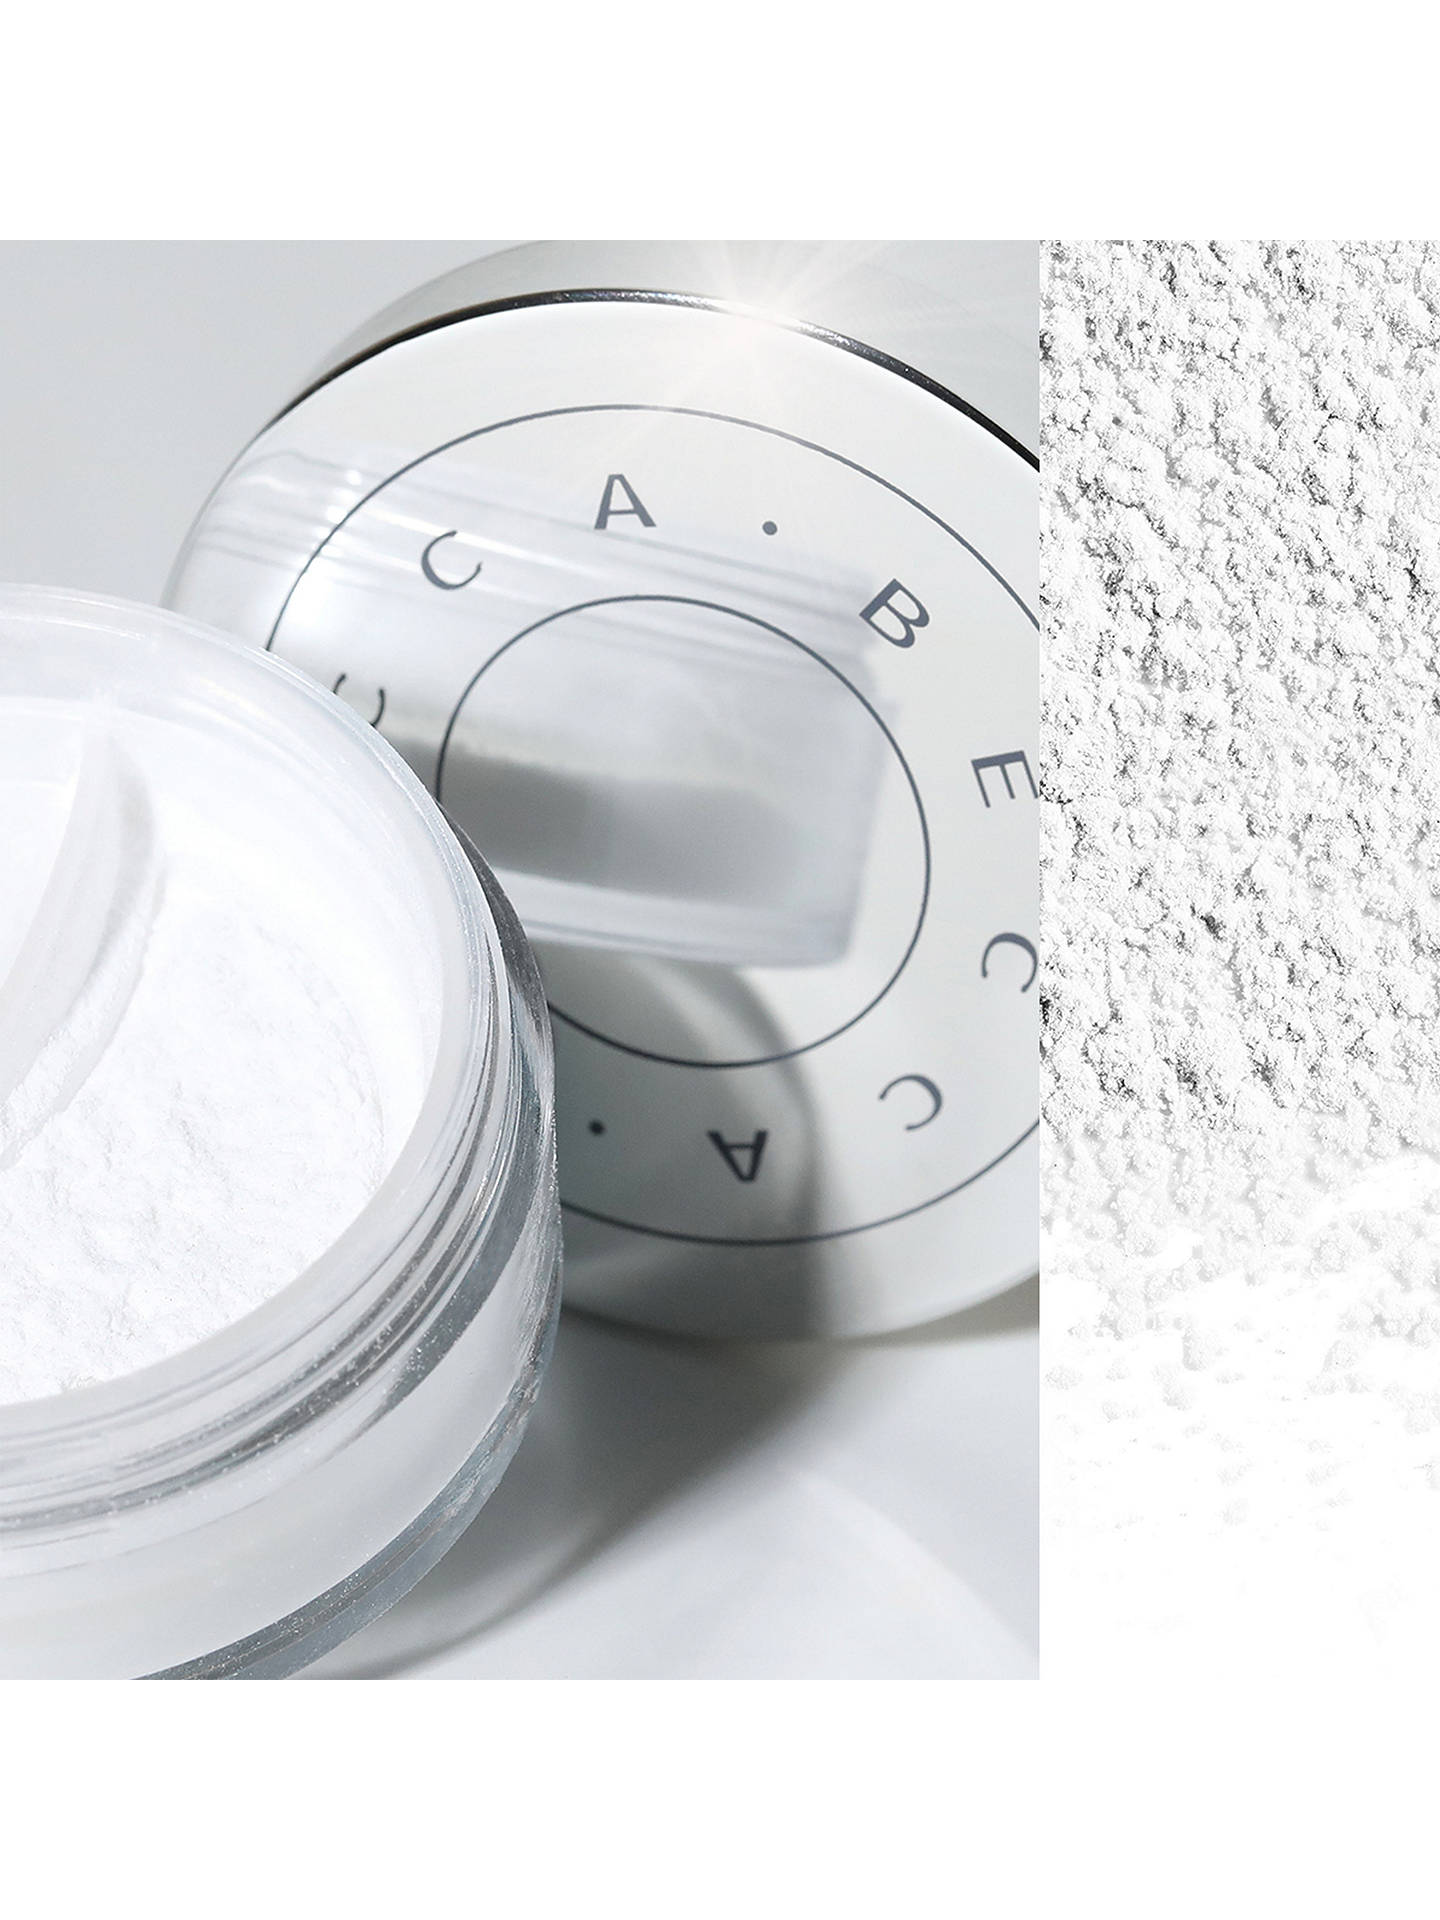 BuyBECCA Under Eye Brightening Setting Powder Online at johnlewis.com